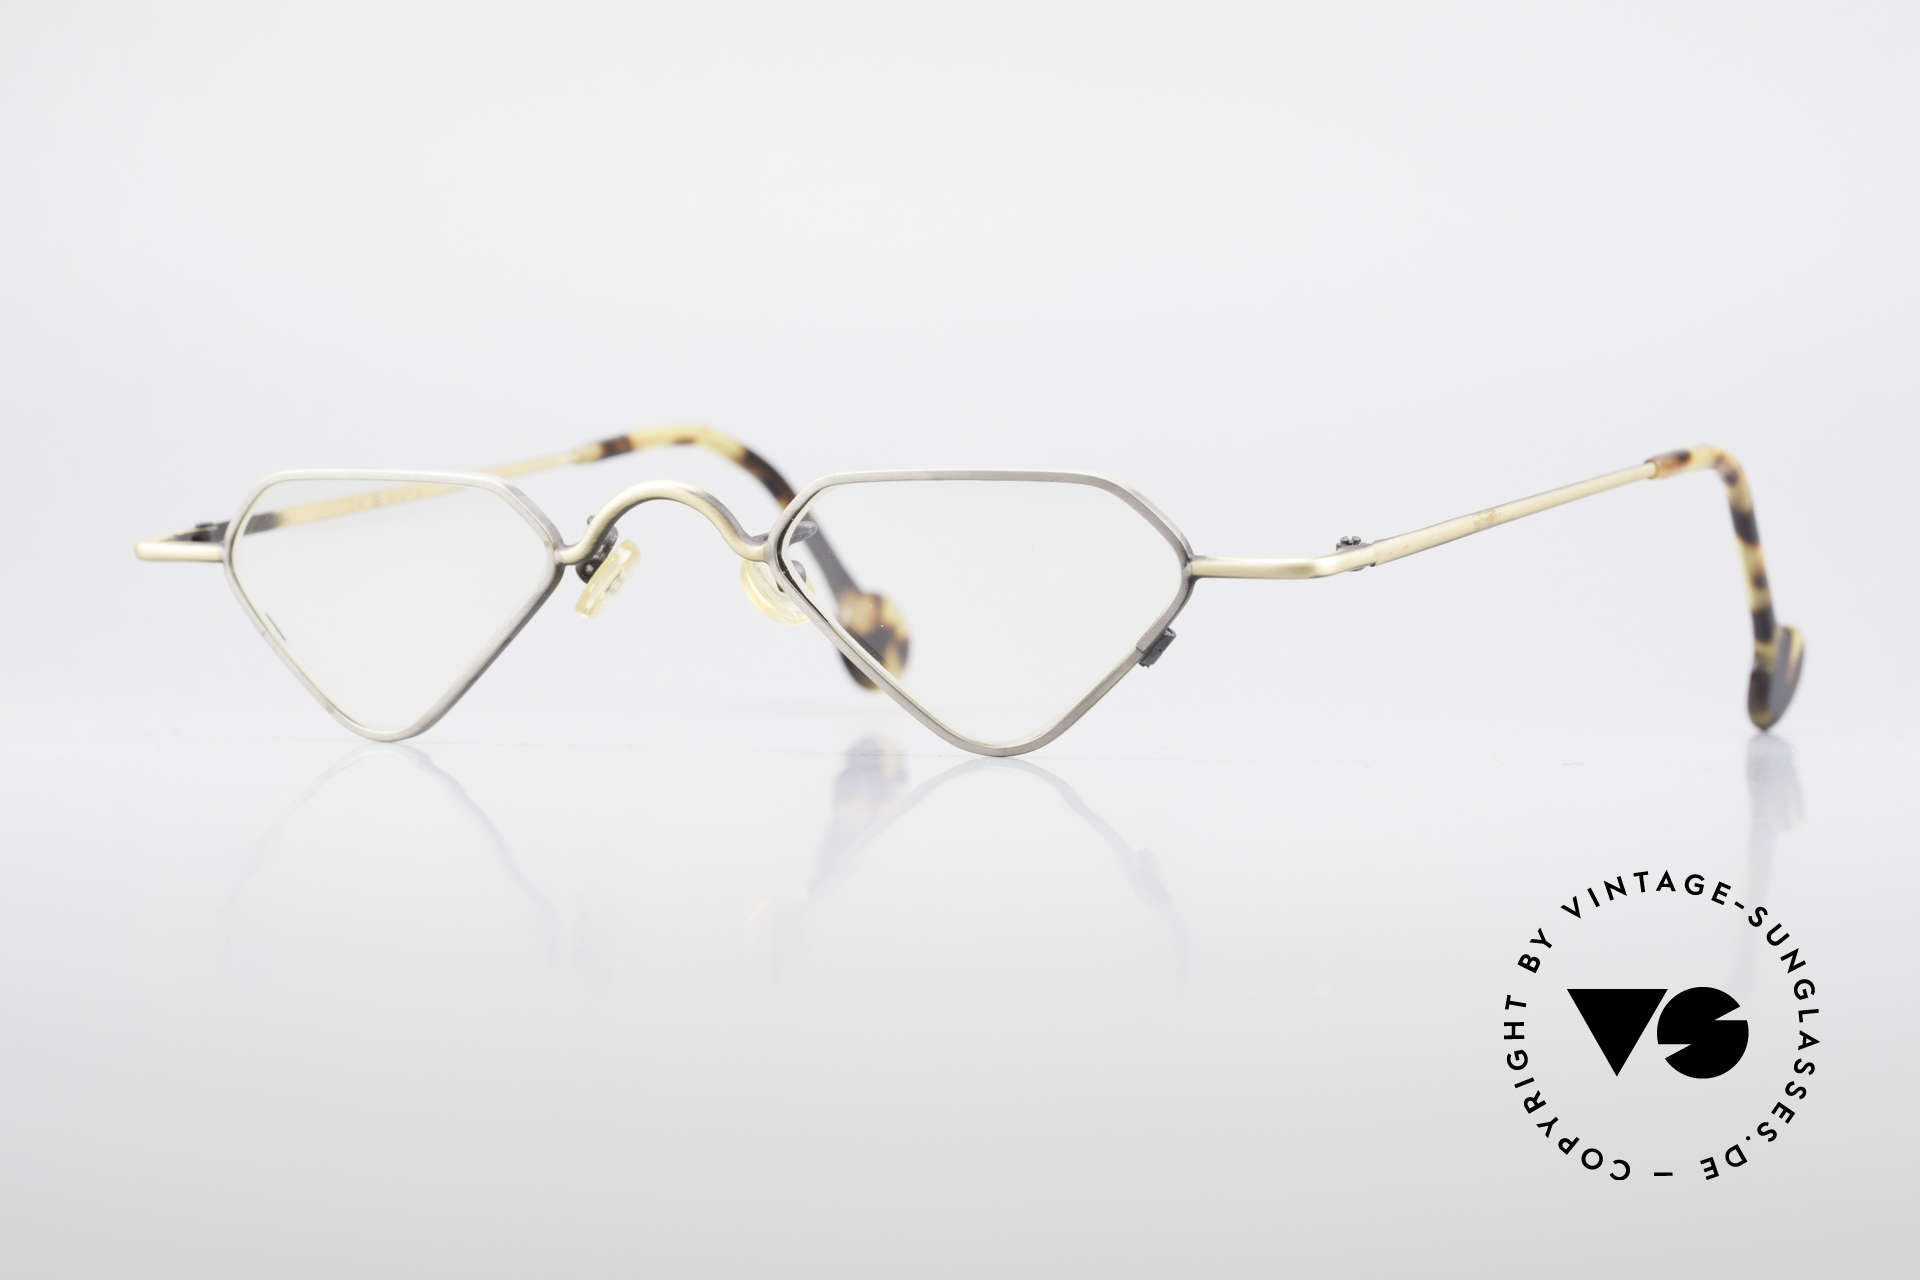 L.A. Eyeworks Millie 403 Extraordinary Reading Glasses, interesting vintage reading glasses by L.A. EYEWORKS, Made for Men and Women